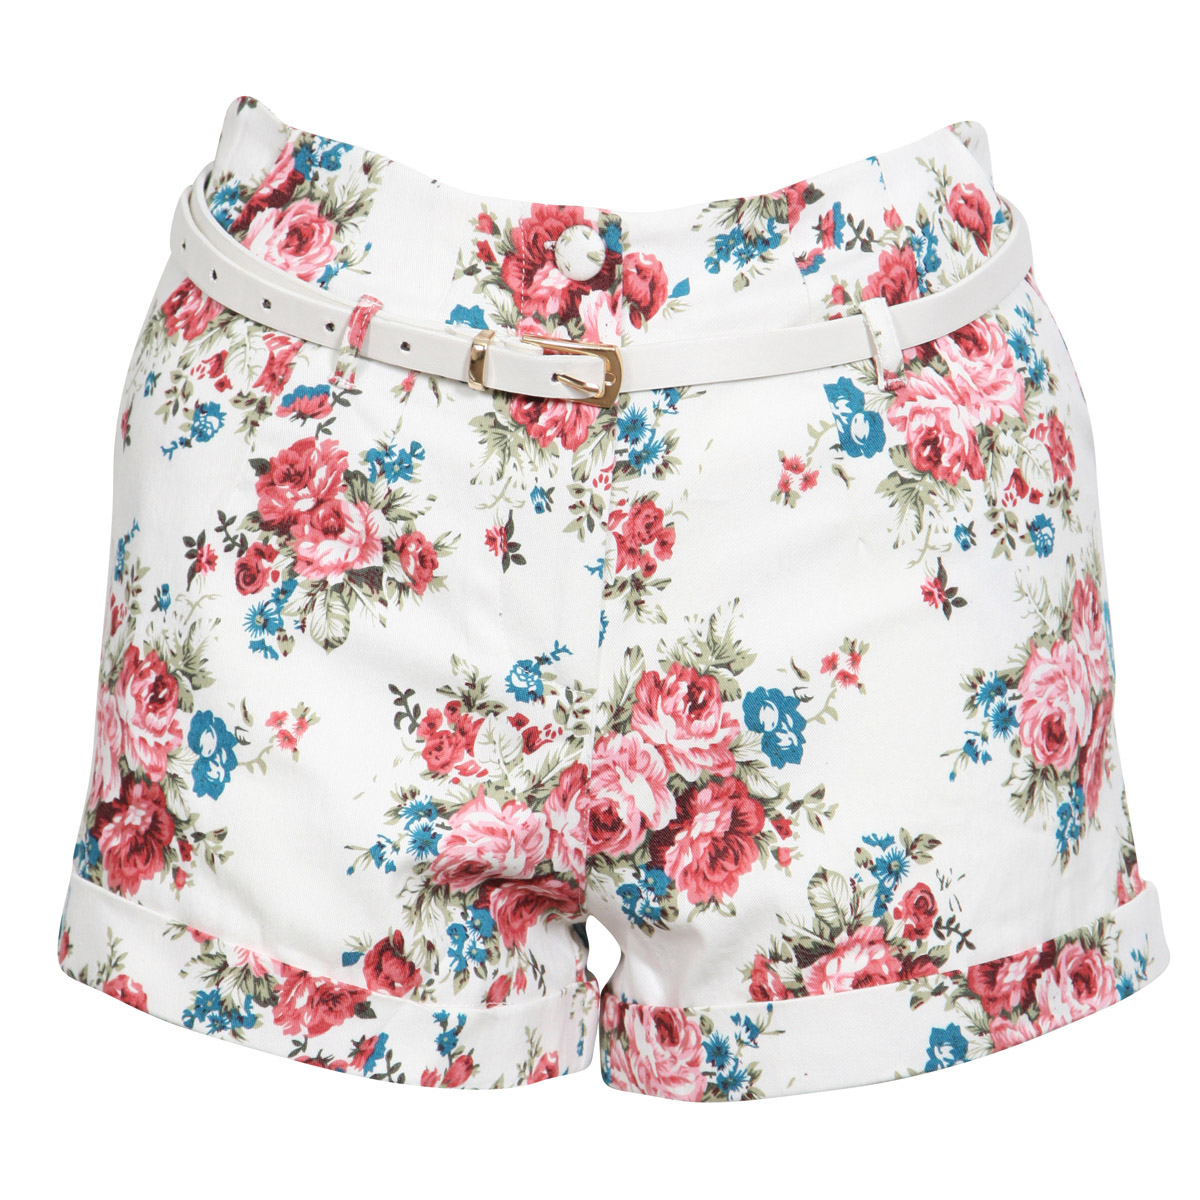 NEW-WOMENS-CREAM-FLORAL-WHITE-BELTED-HIGH-WAIST-DENIM-SHORTS-FLOWER-LADIES-S-M-L